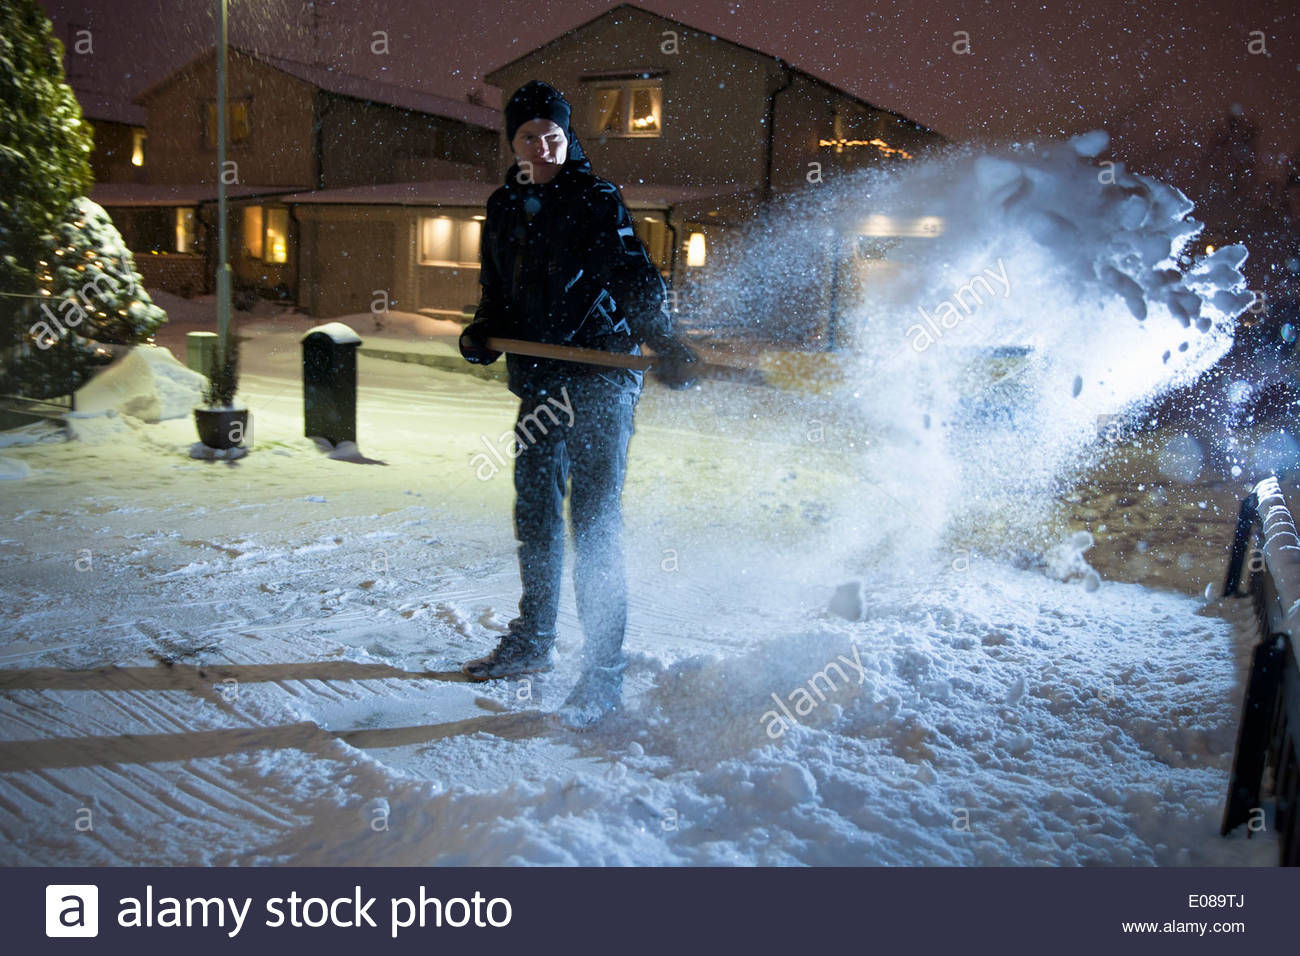 Full length of man removing snow from street - Stock Image